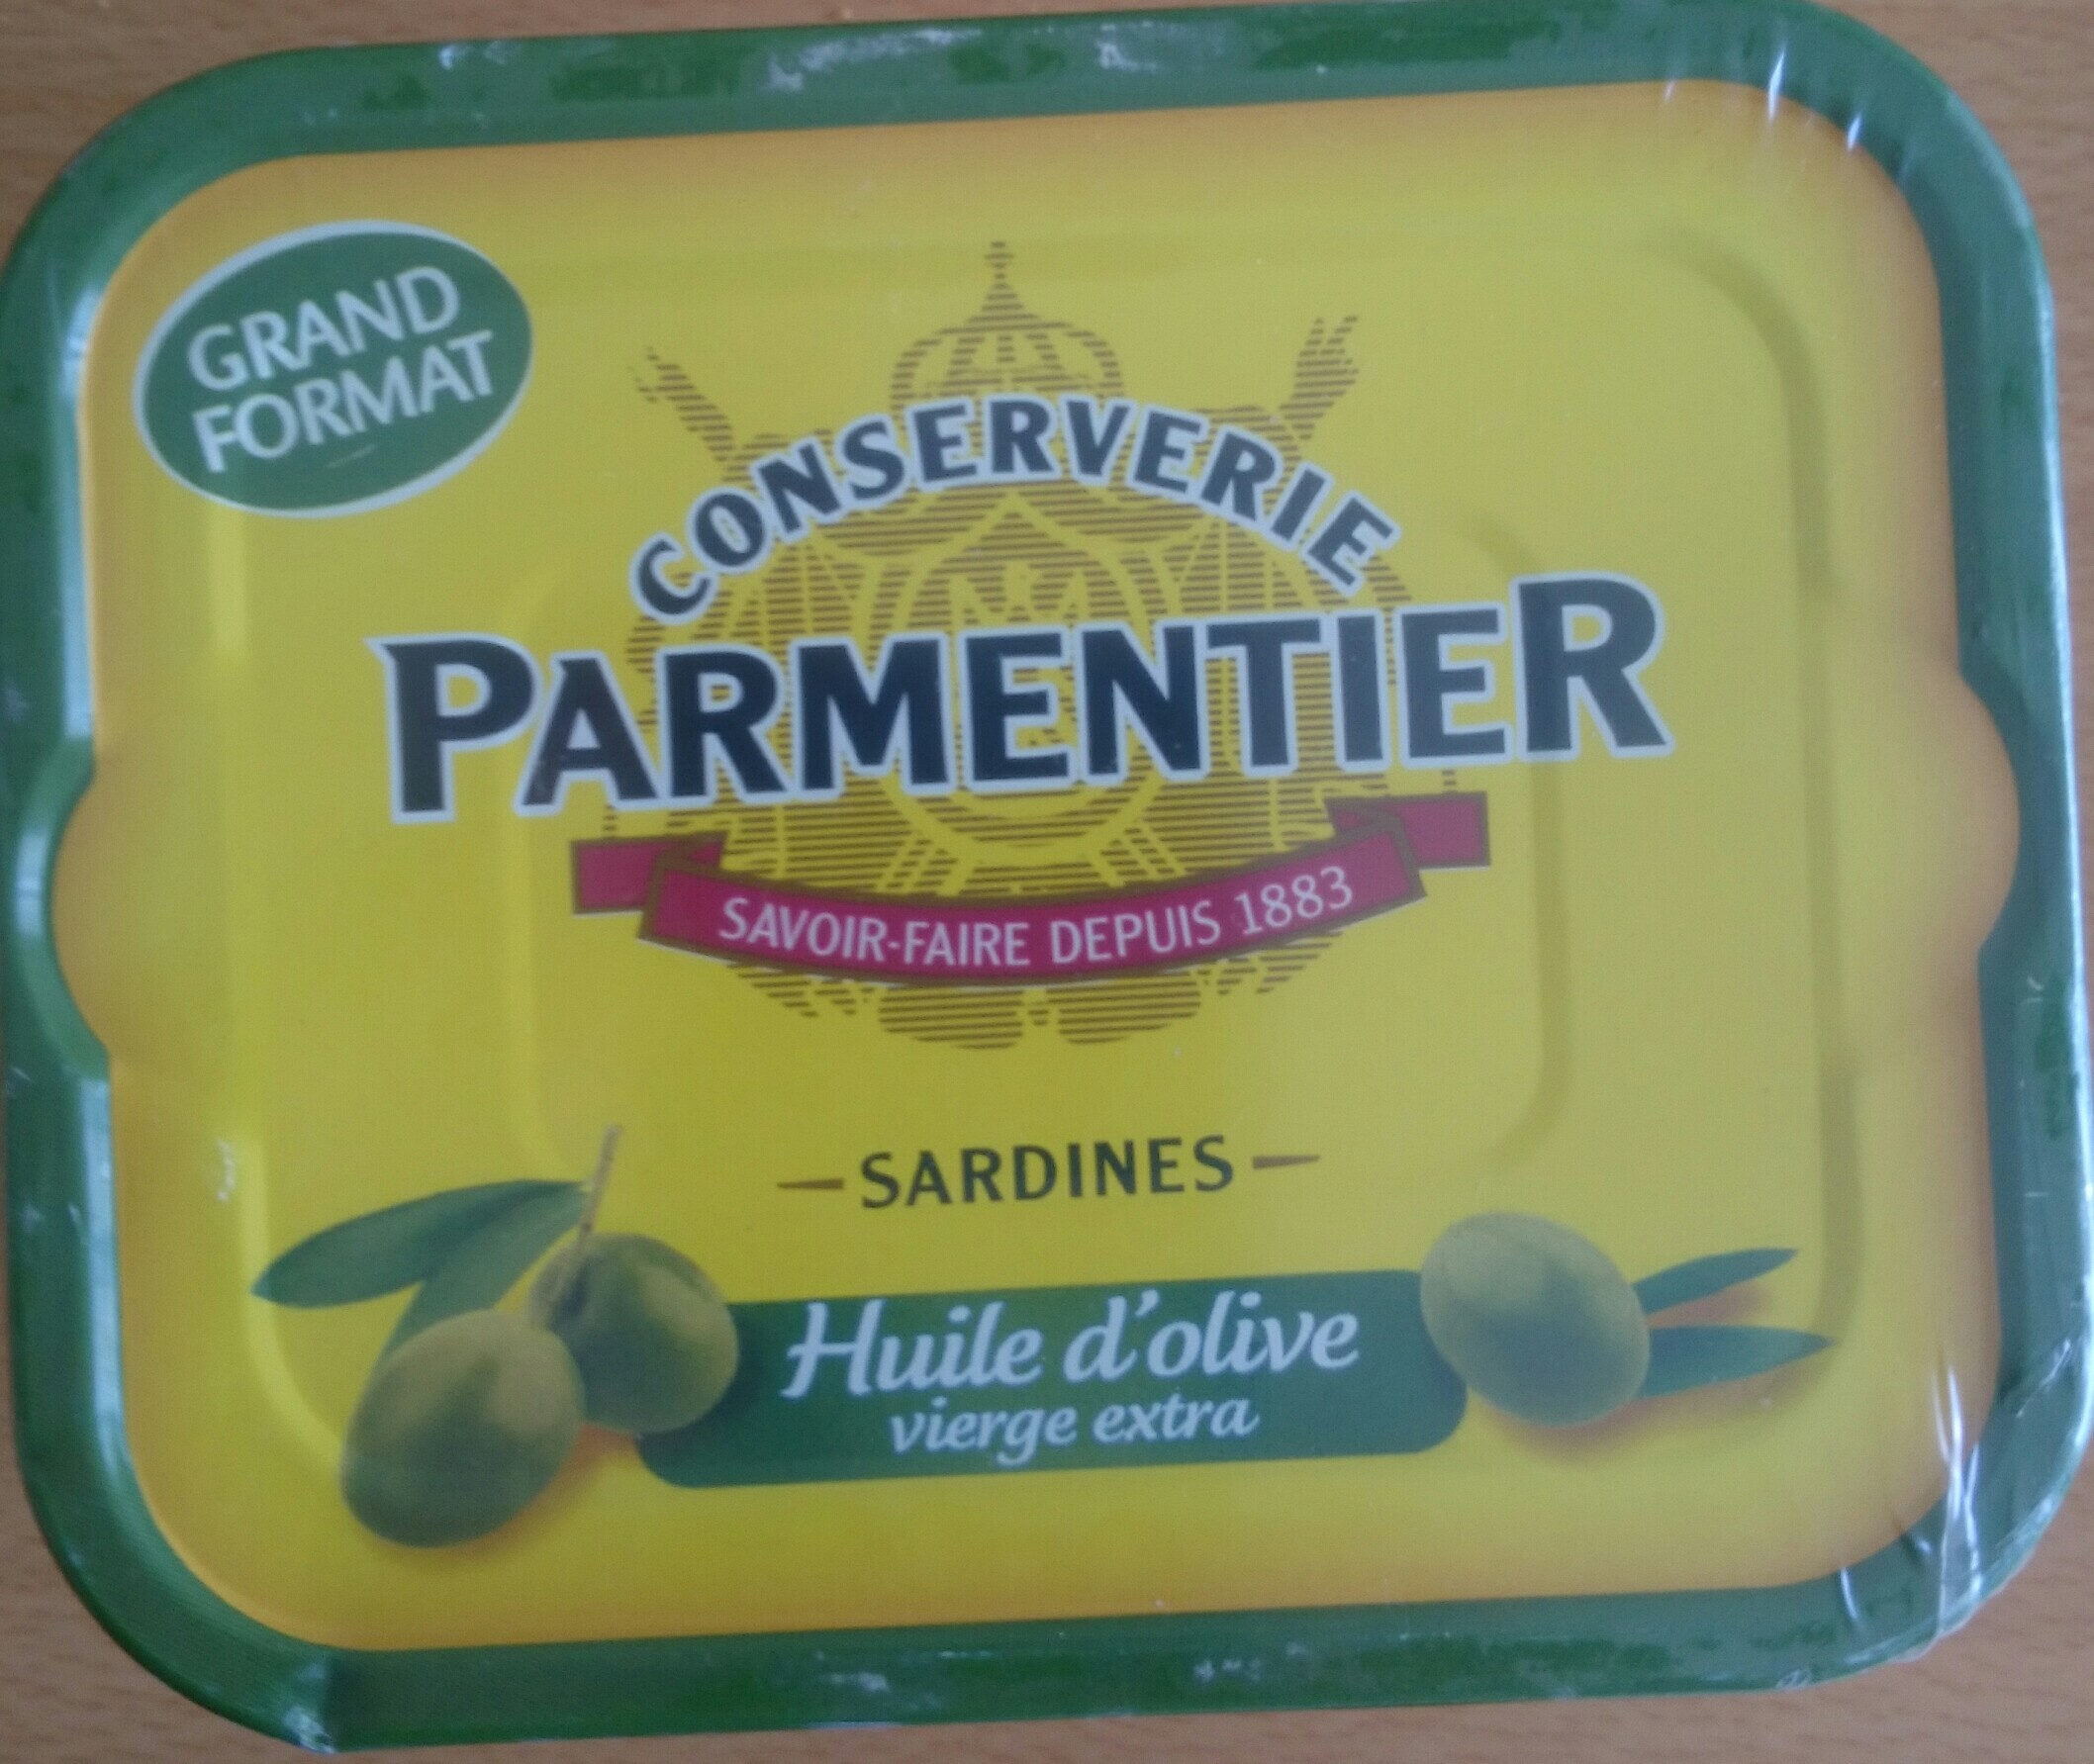 sardines huile d'olive vierge extra - Product - fr